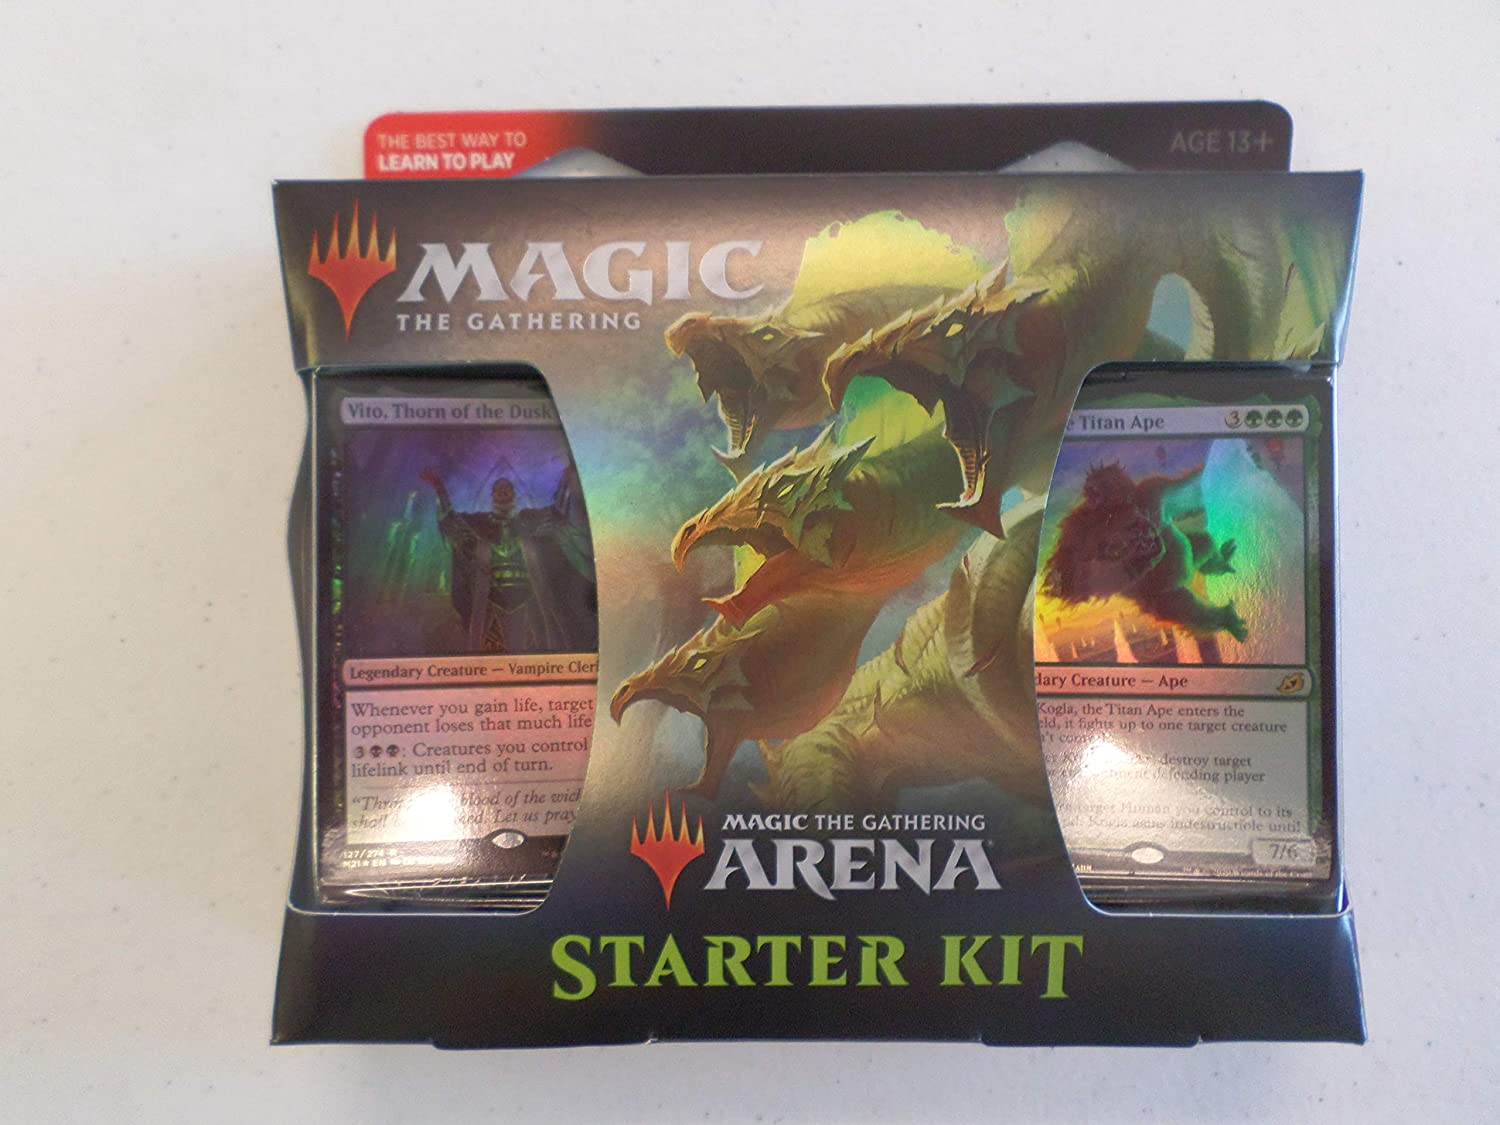 Arena Starter Kit - Ironscale Hydra Cover with Vito and Kogla cards